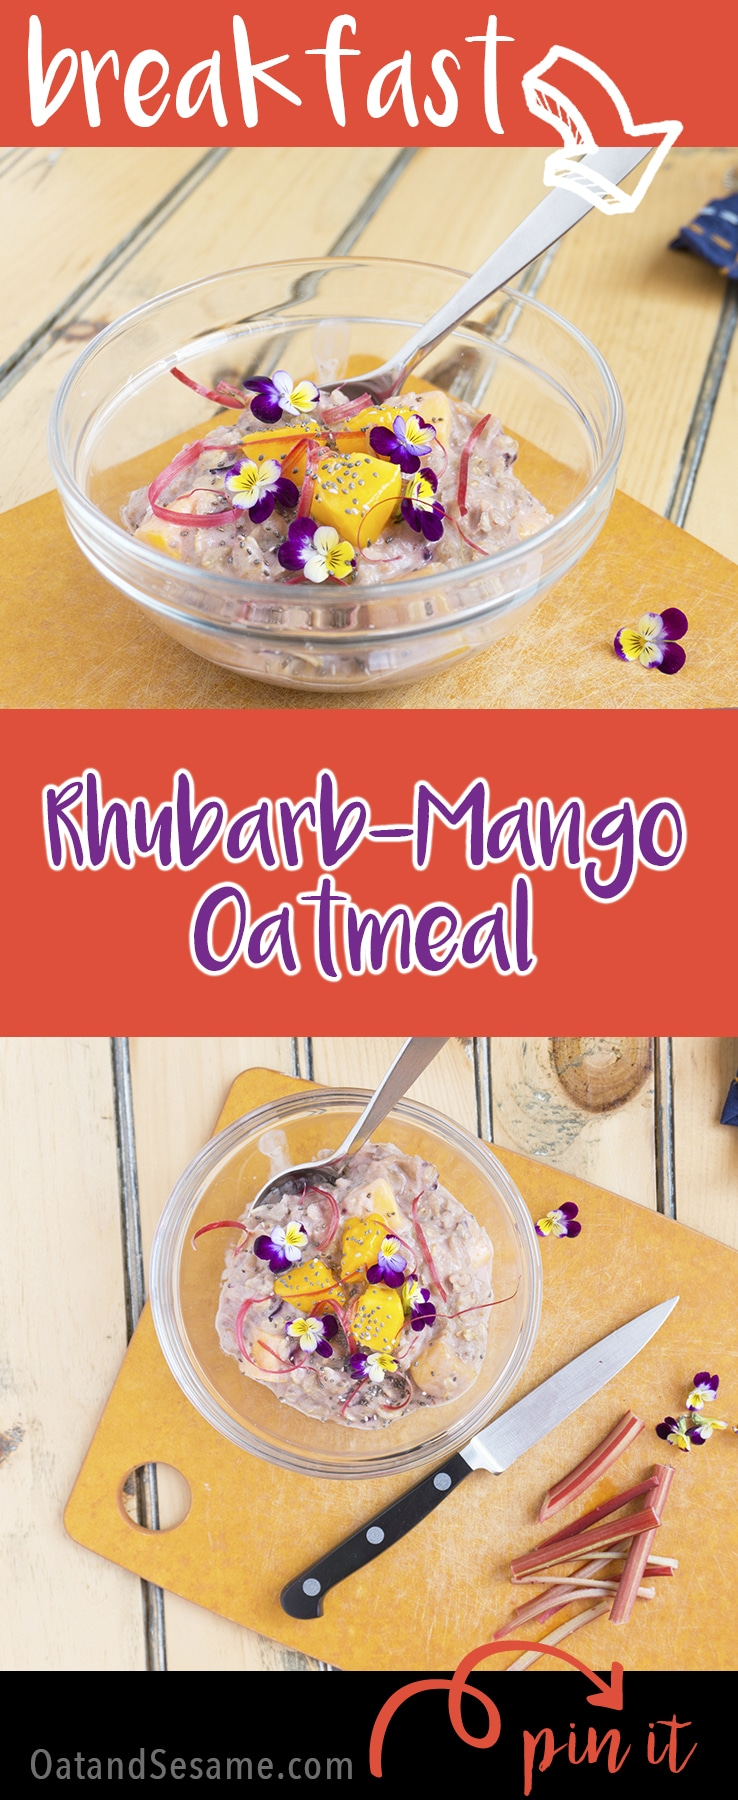 This RHUBARB-MANGO Oatmeal is the perfect blend of sweet and tart. I always thought strawberry rhubarb was the best, but mango is equally as delicious! | #RHUBARB | #BREAKFAST | #OATMEAL | #VEGAN | #VEGETARIAN | #Recipes at OatandSesame.com